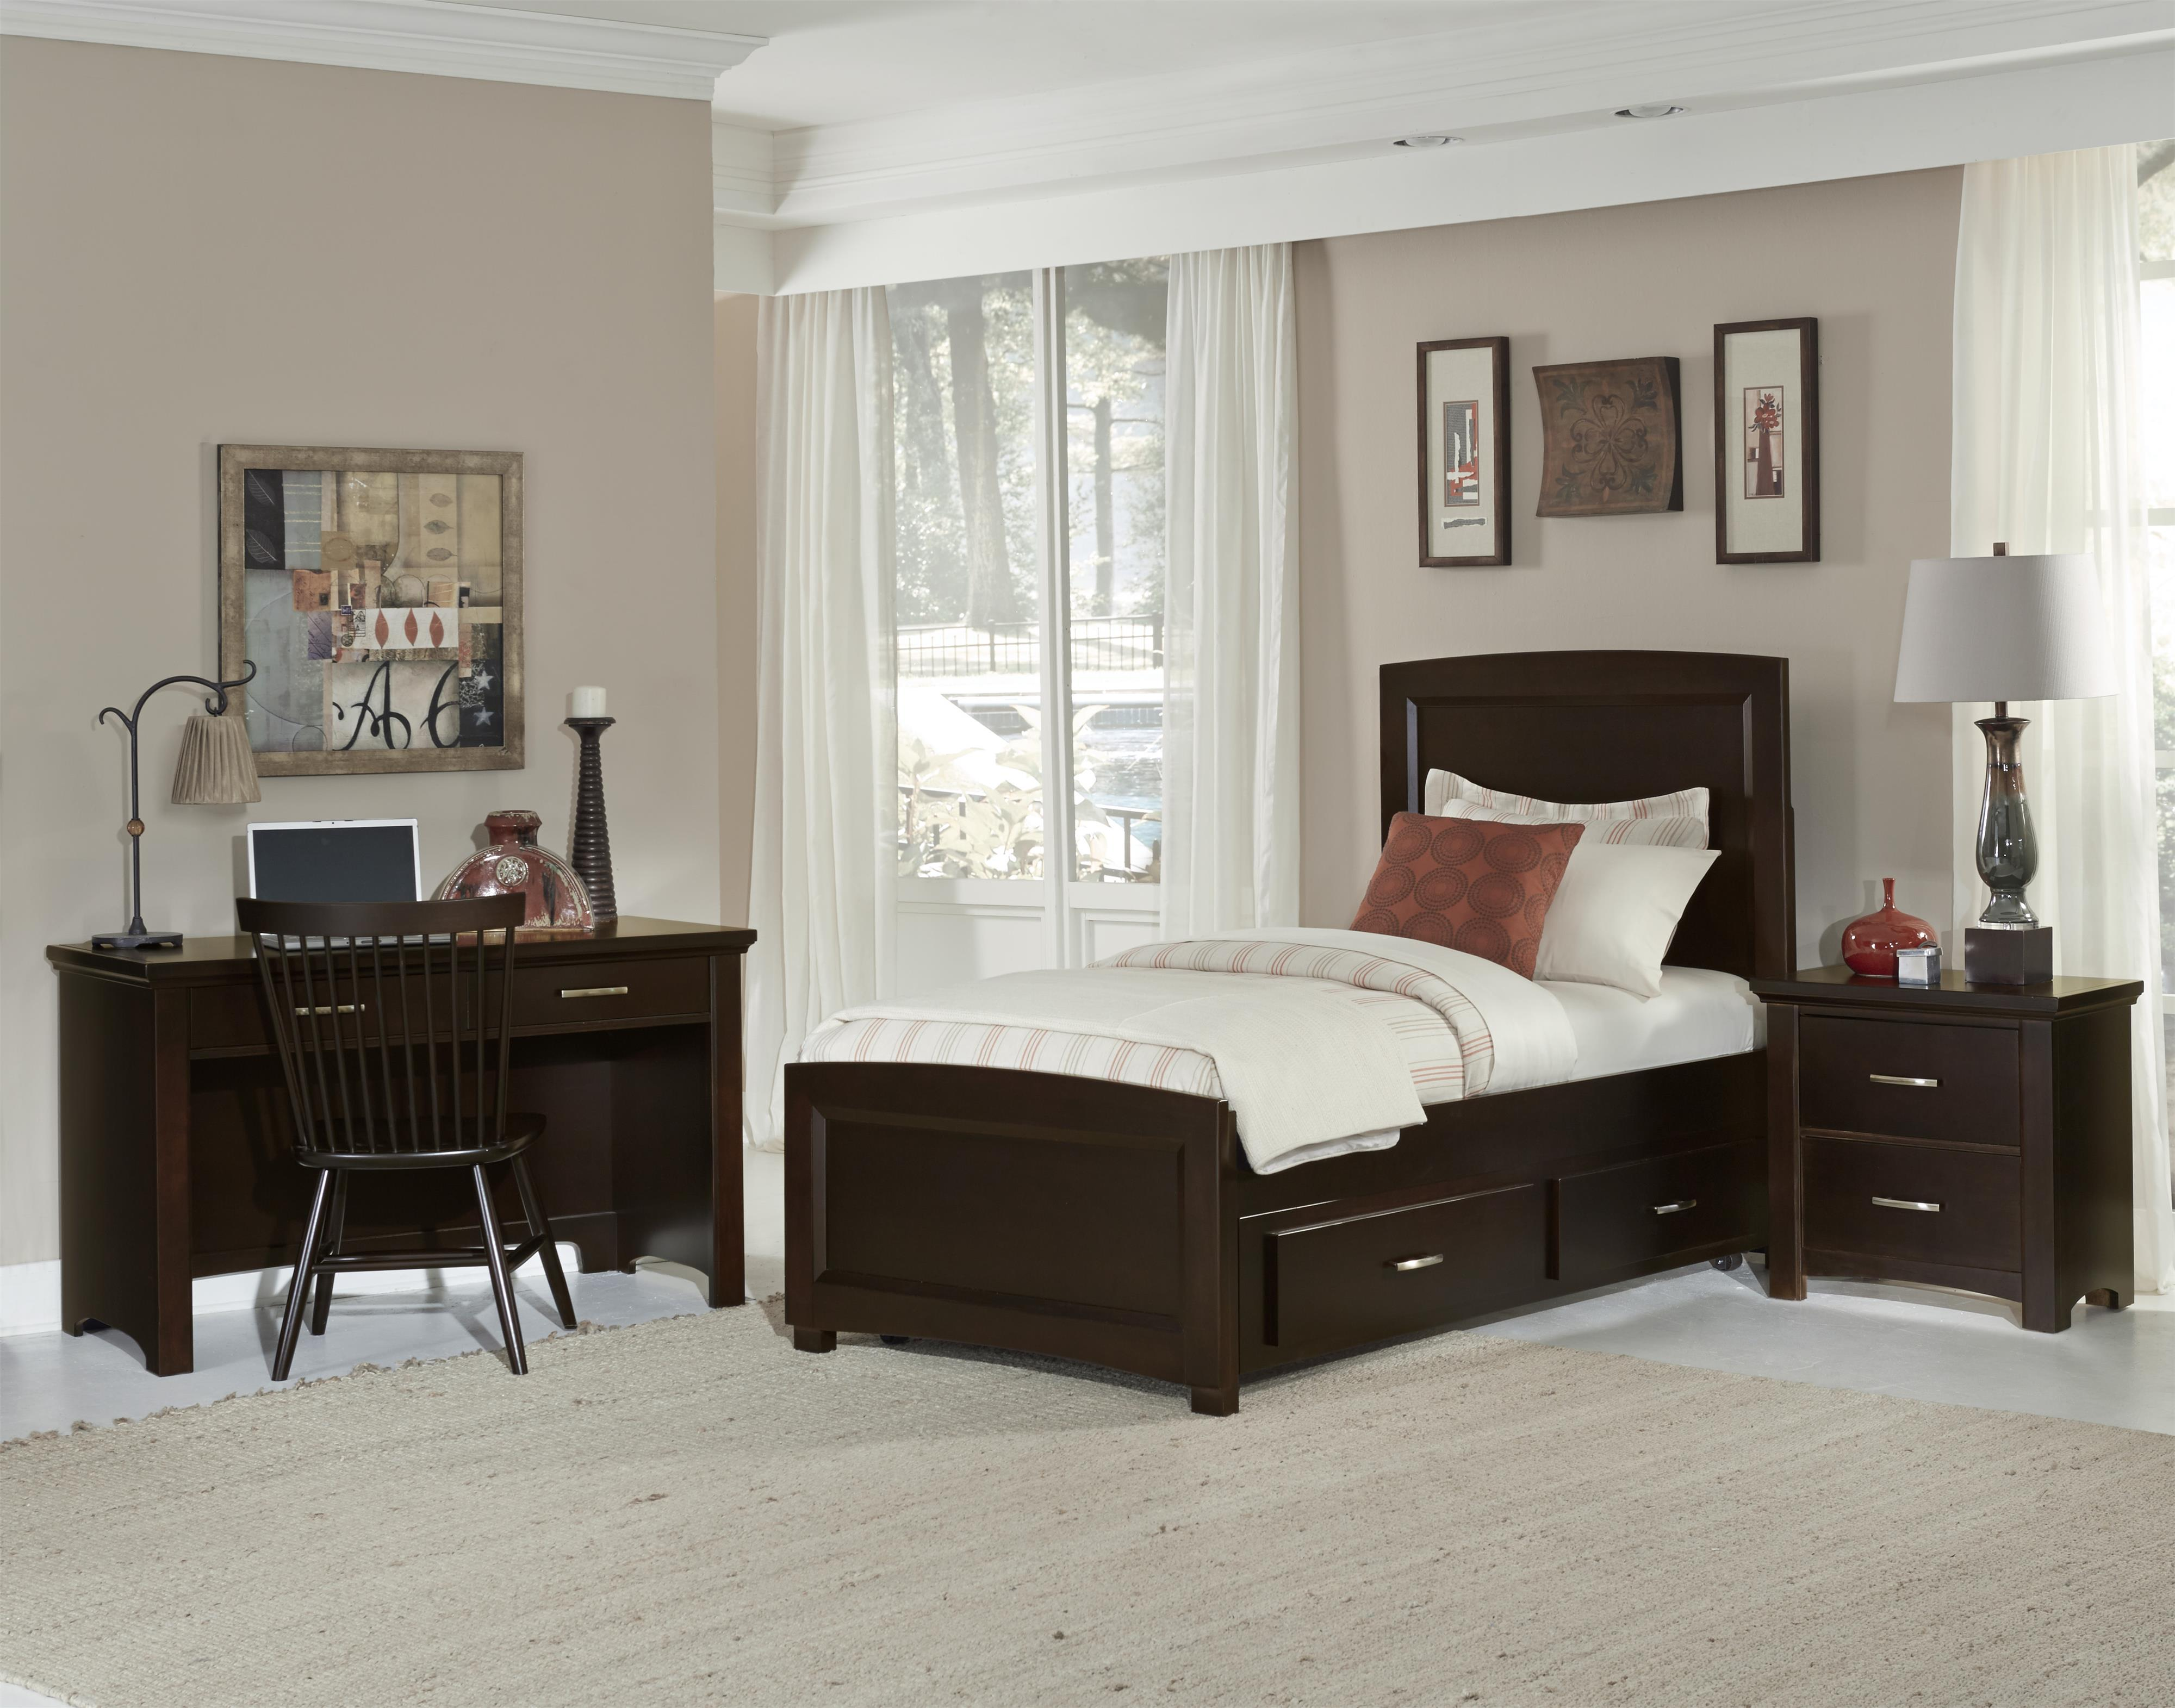 Vaughan Bassett Transitions Twin Bedroom Group - Item Number: BB67 T Bedroom Group 2